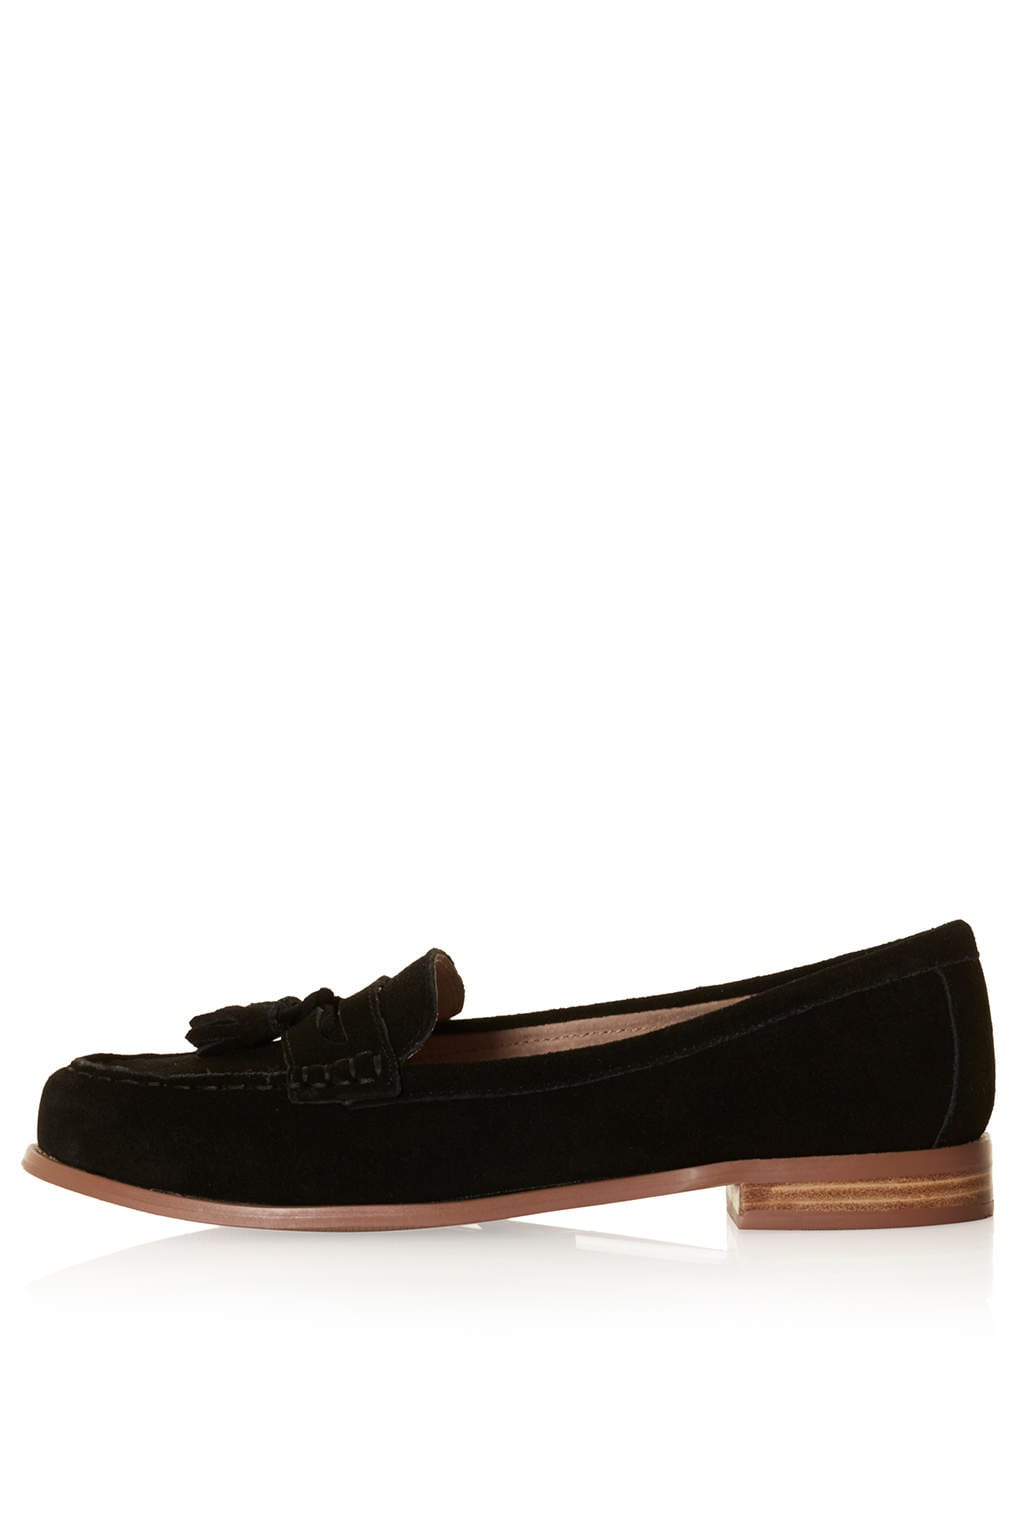 Latest Loafers in trends for women